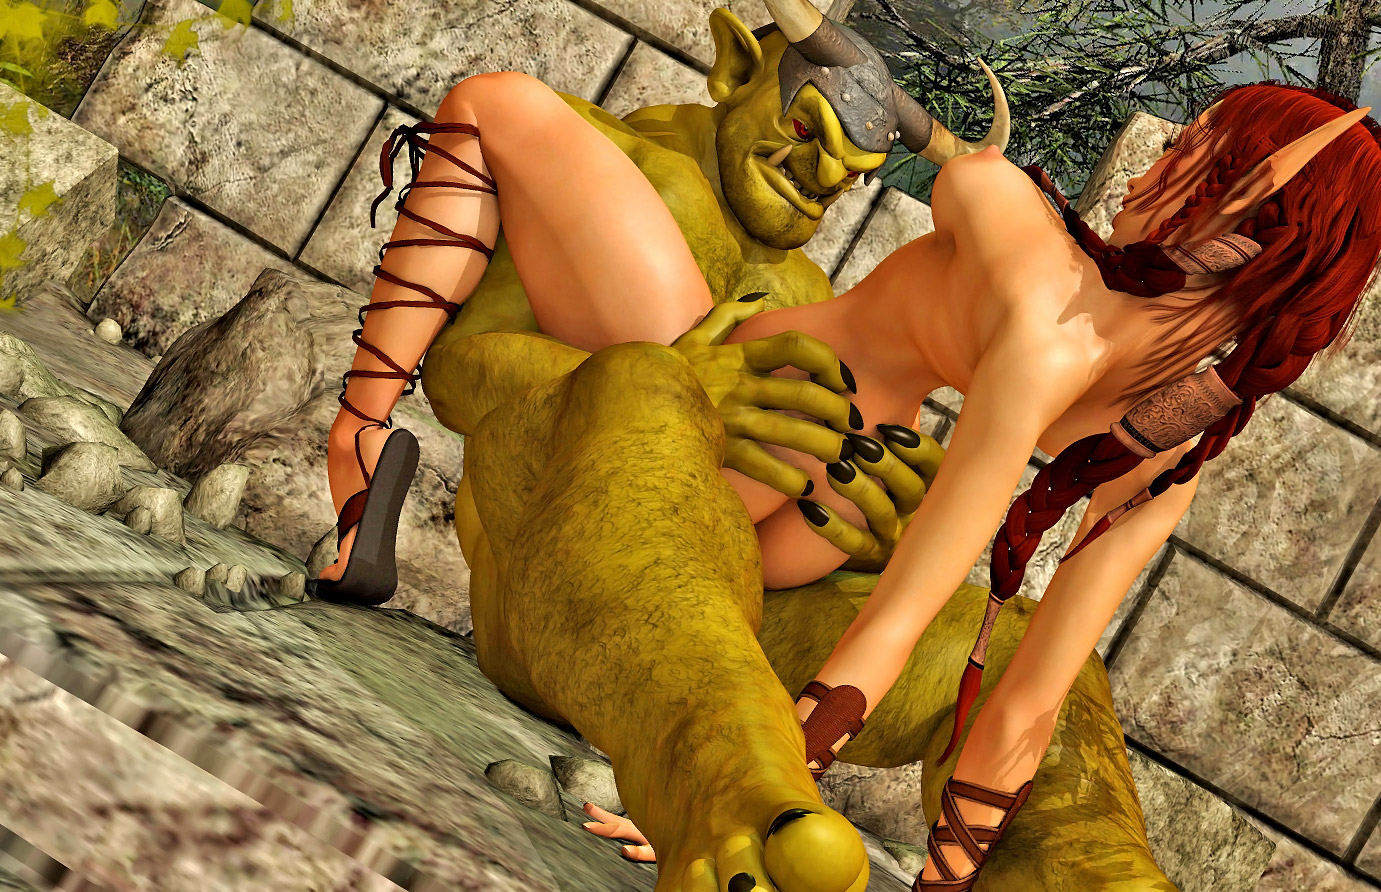 Elf girl forced sex erotic pictures